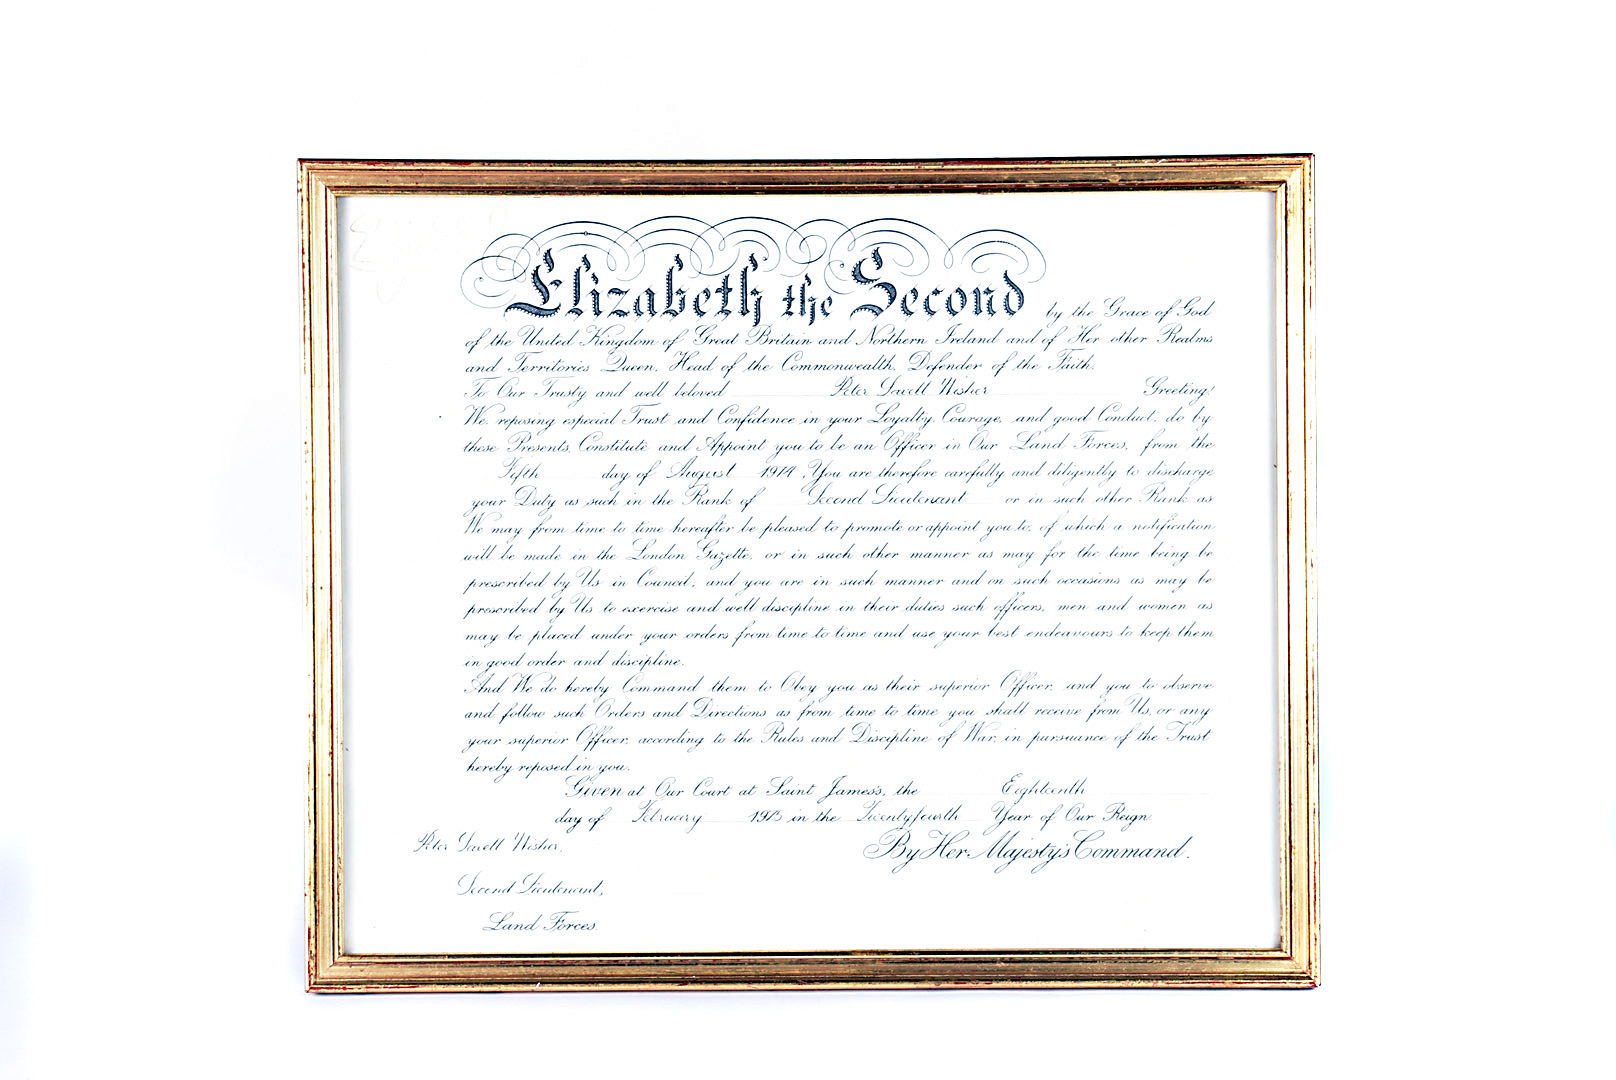 A Queen Elizabeth II Military Commission, awarded to Second Lieutenant Peter Savell Wisher of the